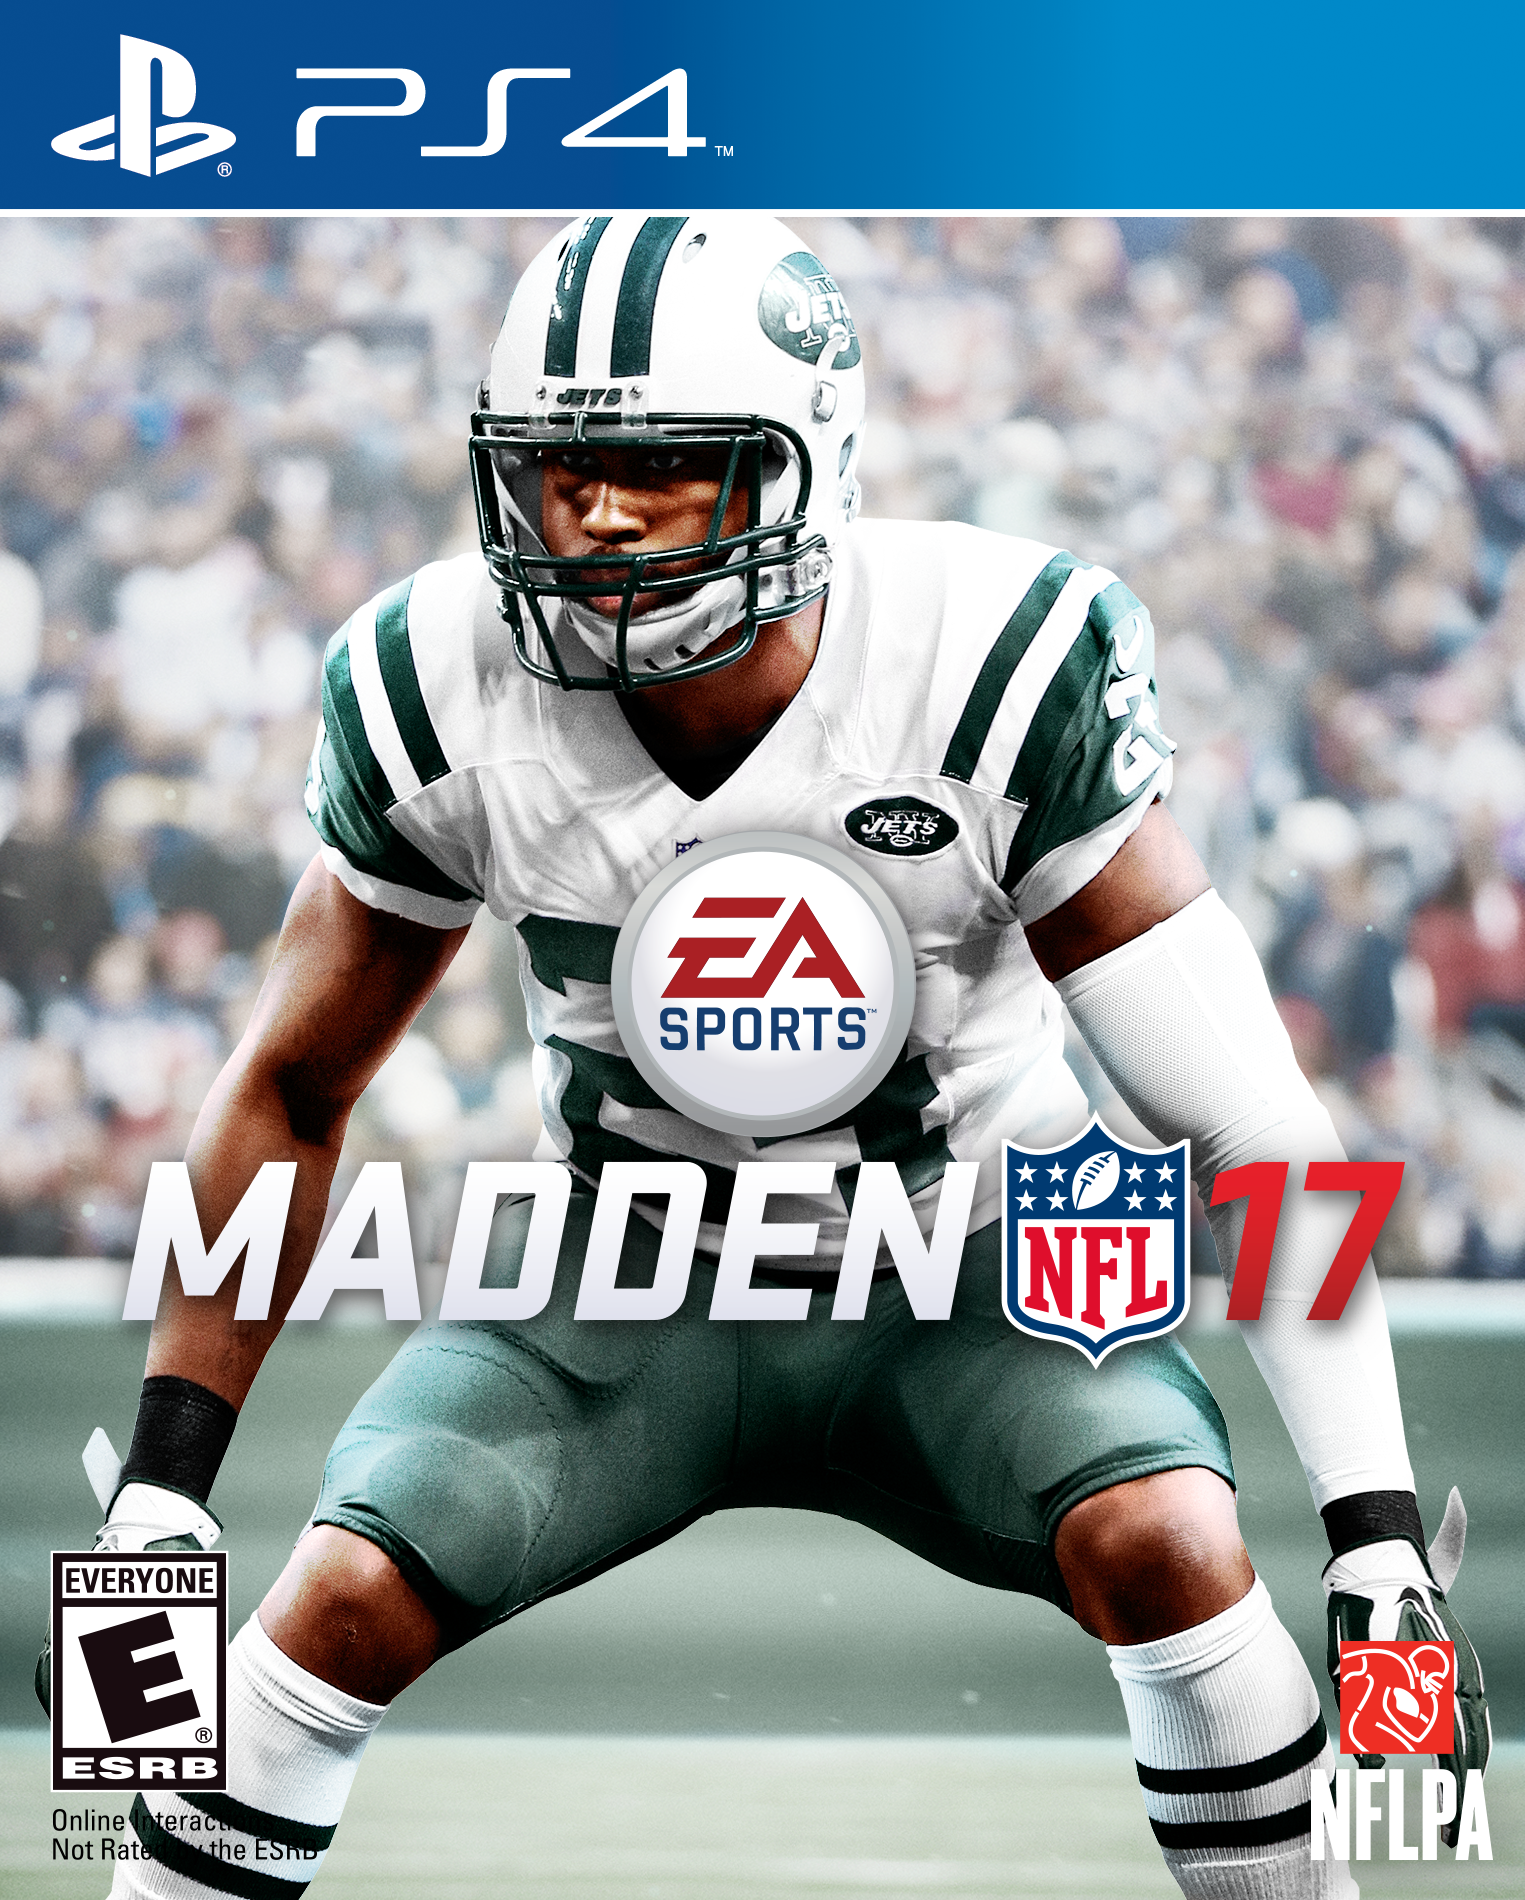 Madden 17 Custom Covers Thread - Page 33 - Operation ...